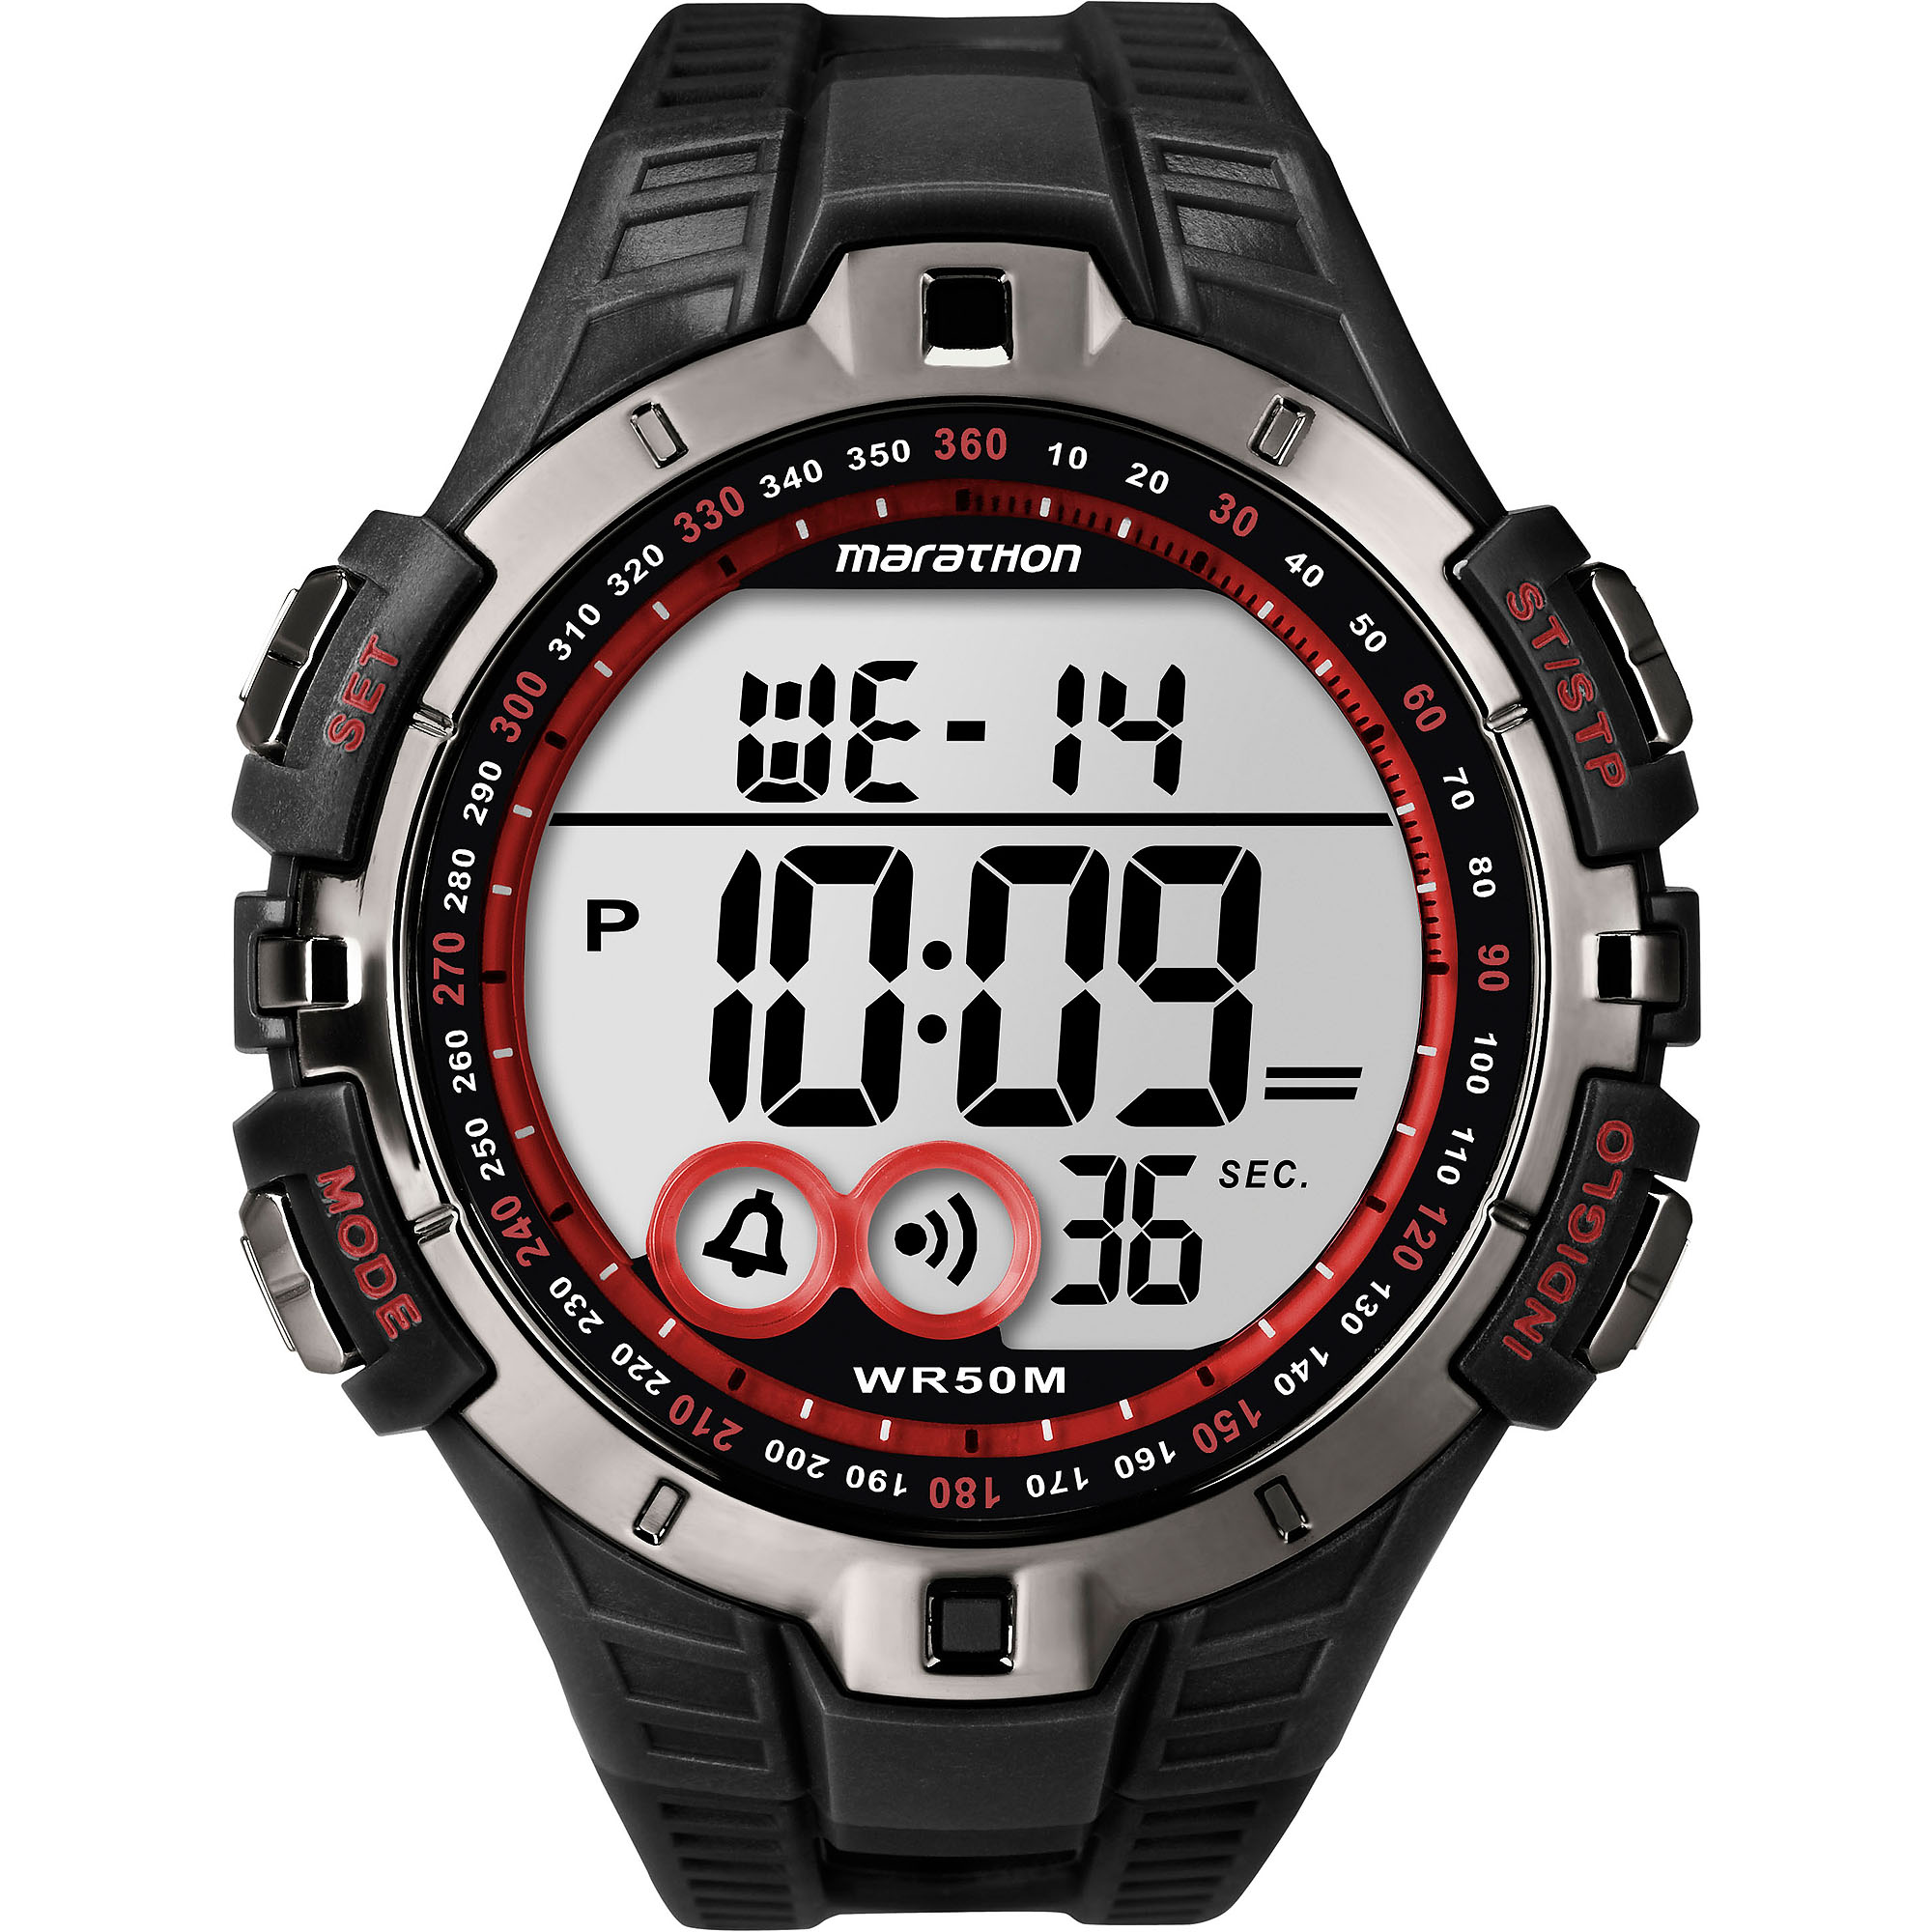 image watch gps watches larger sports tec hiking waterproof deals grey smart